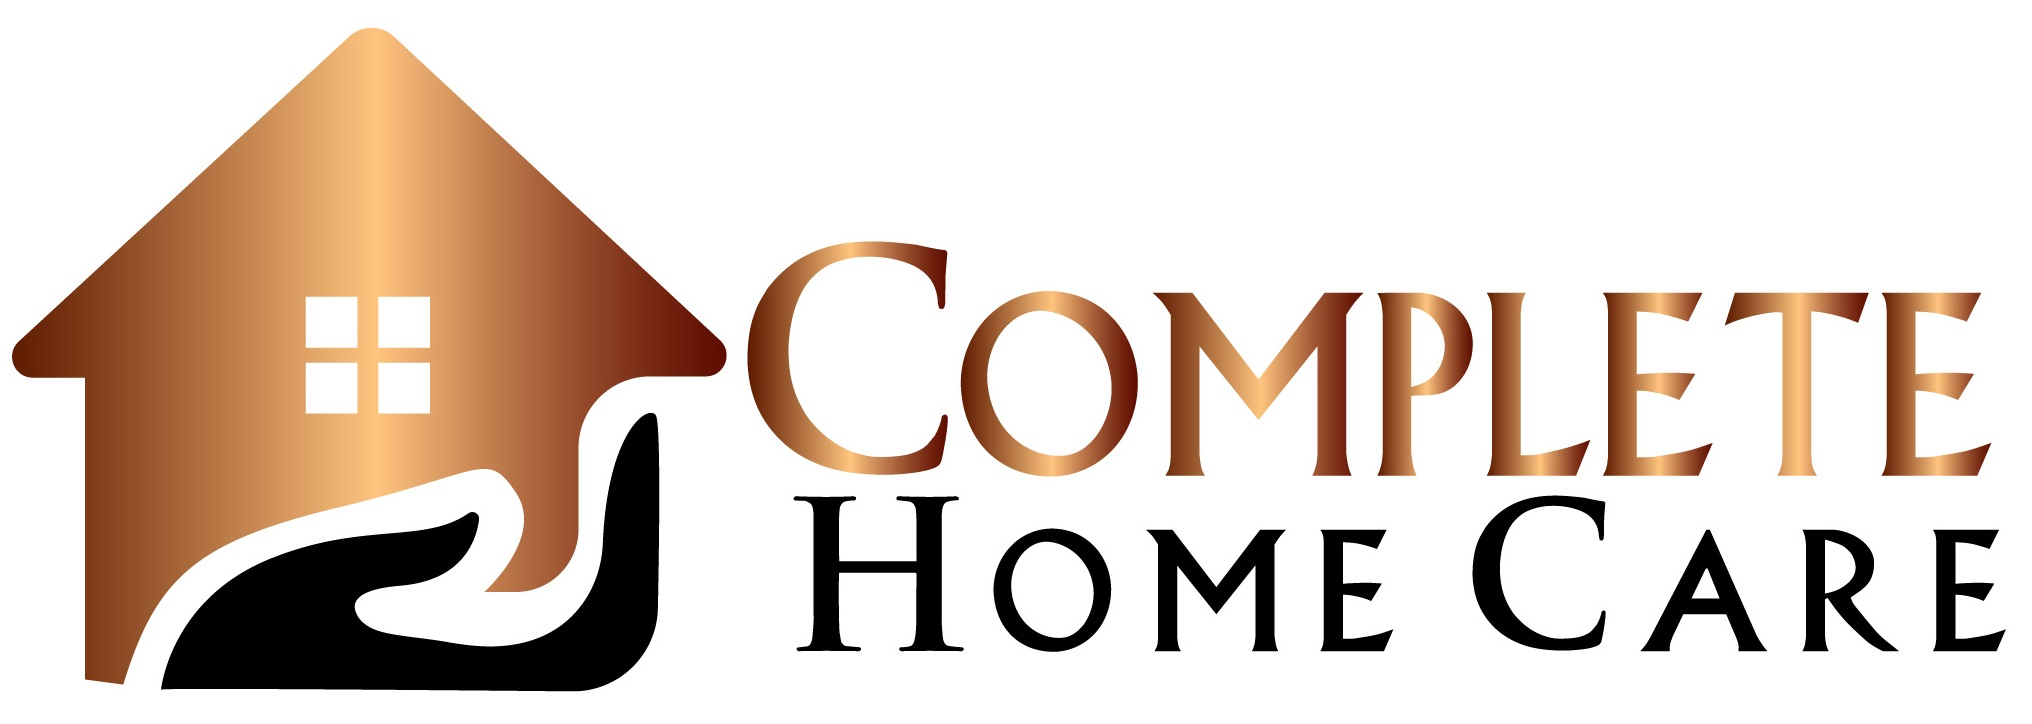 Complete Home Care LLC Announces Holistic Care Services for the Old and Ailing in Baltimore